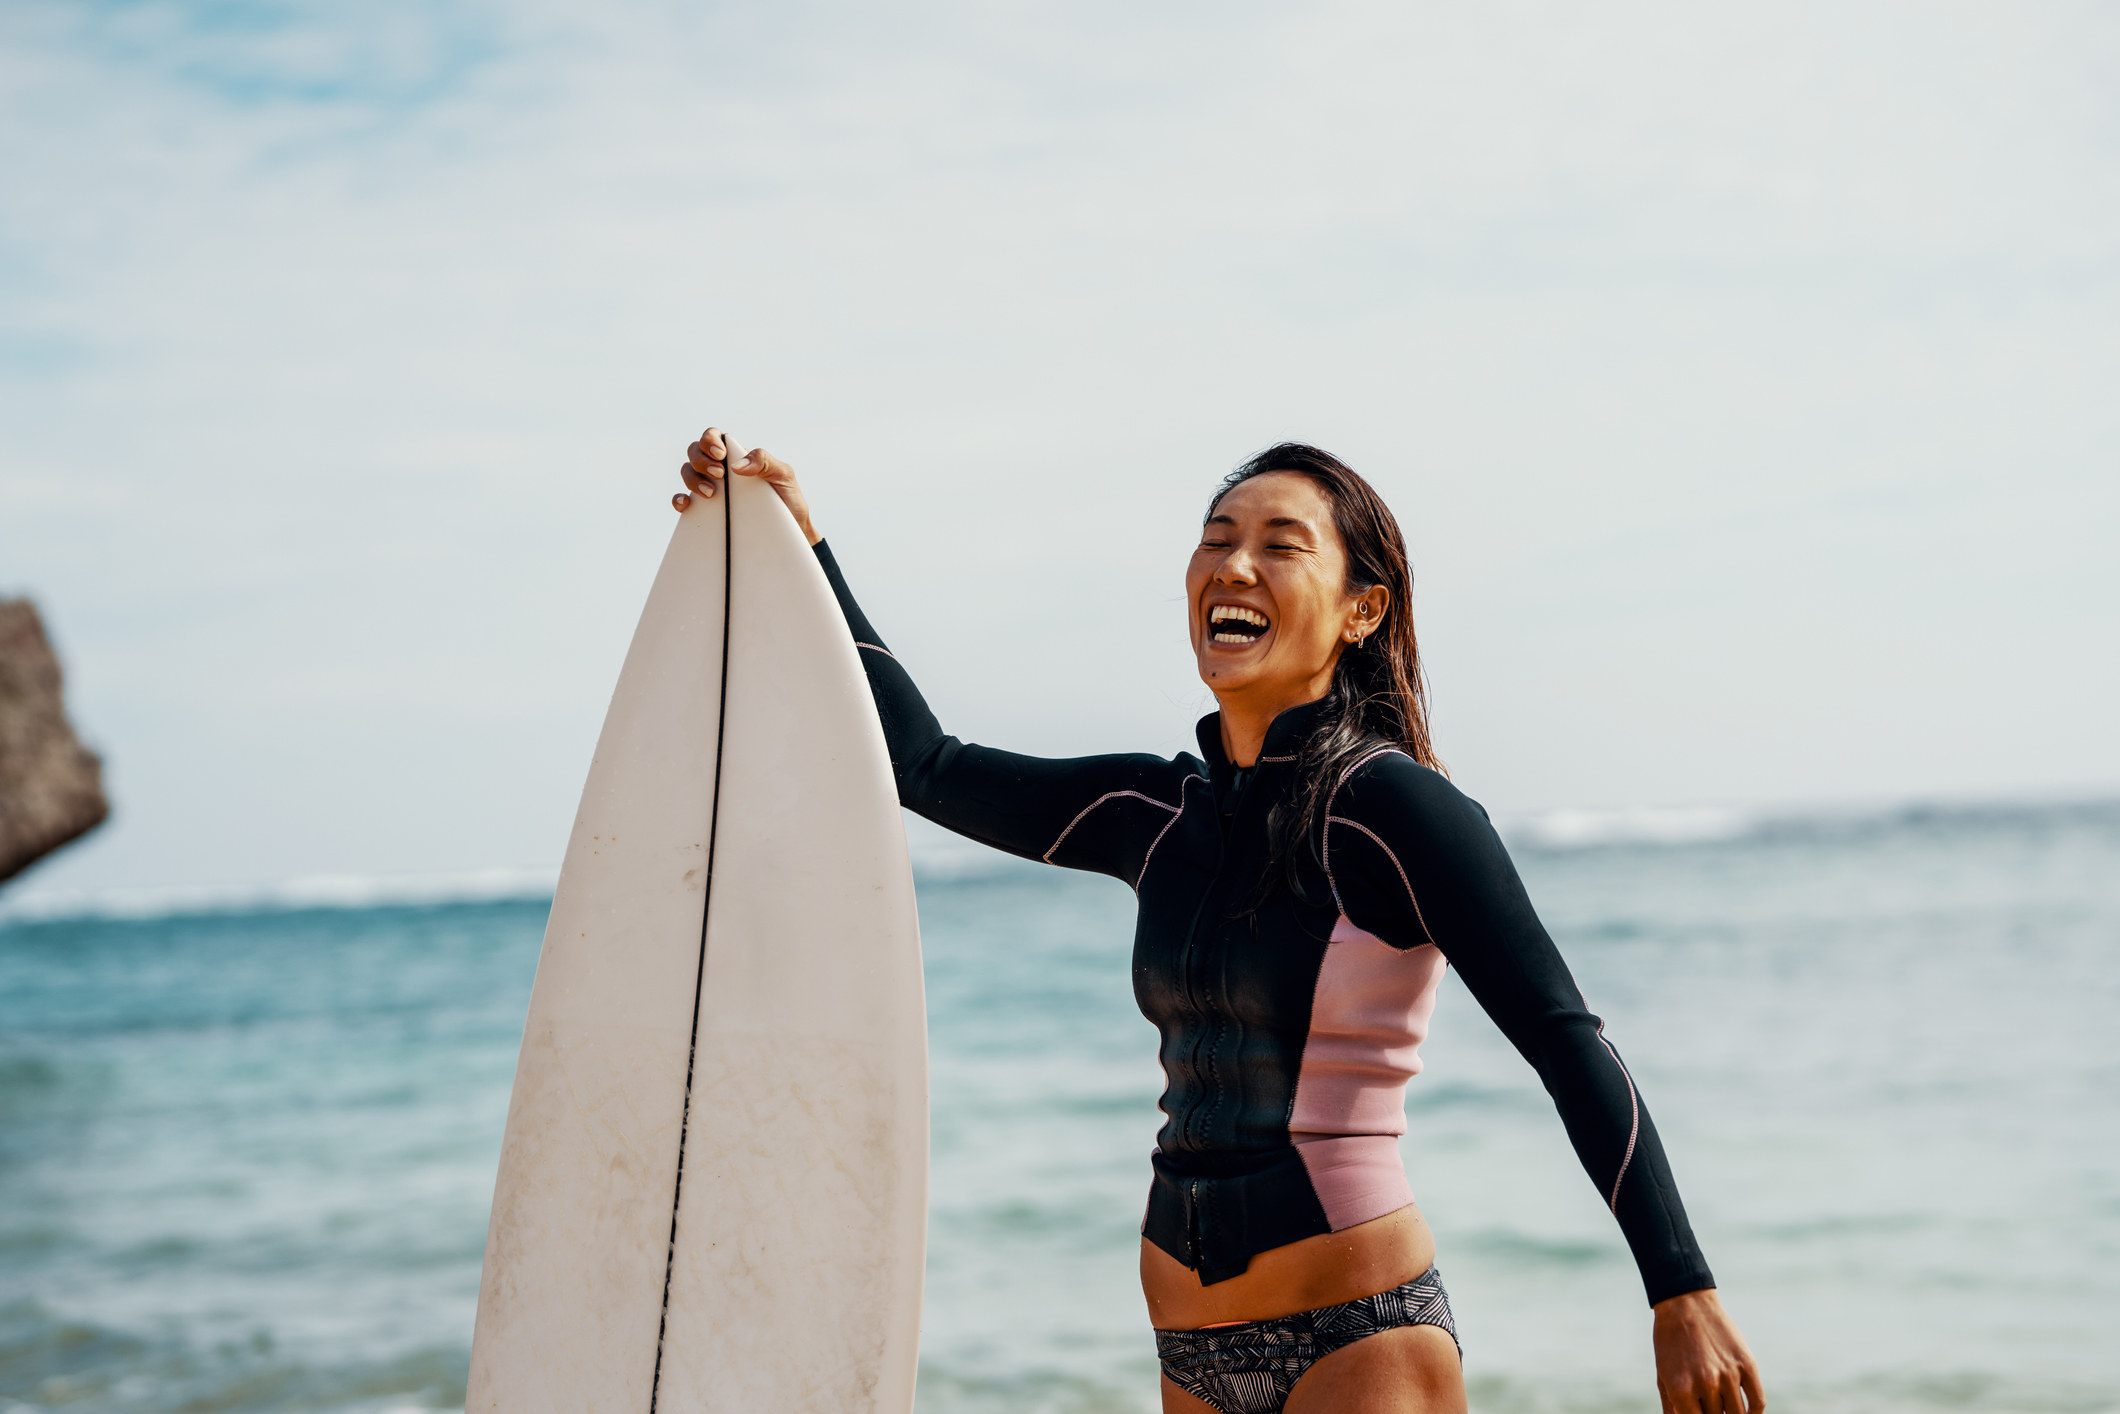 A surfer happily smiling holding a surfboard on the beach